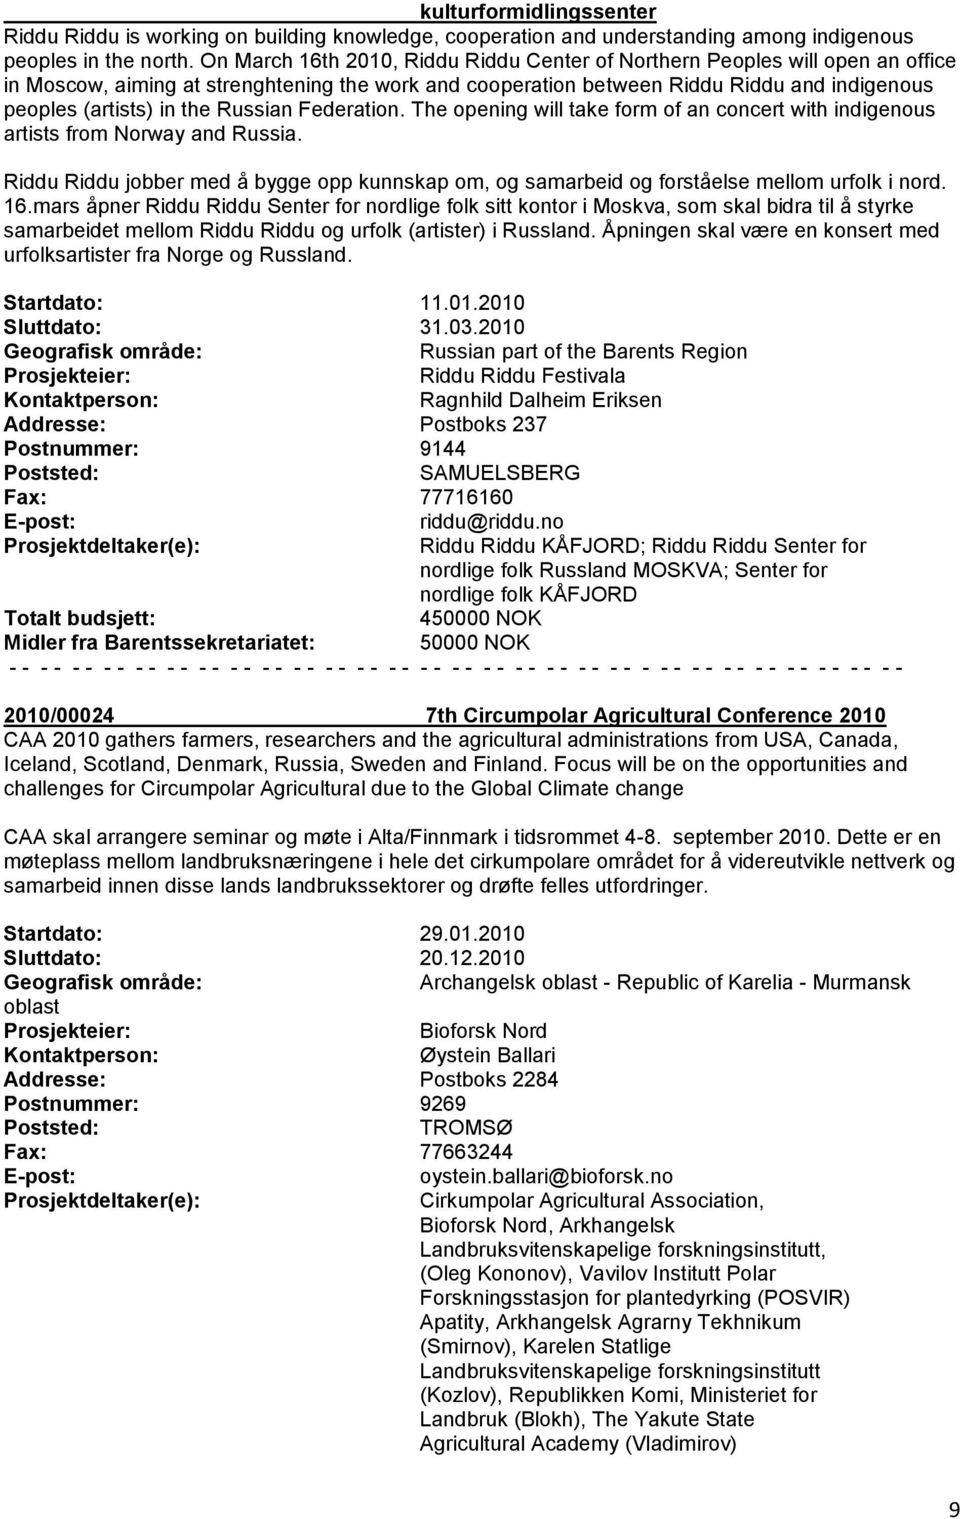 Russian Federation. The opening will take form of an concert with indigenous artists from Norway and Russia.